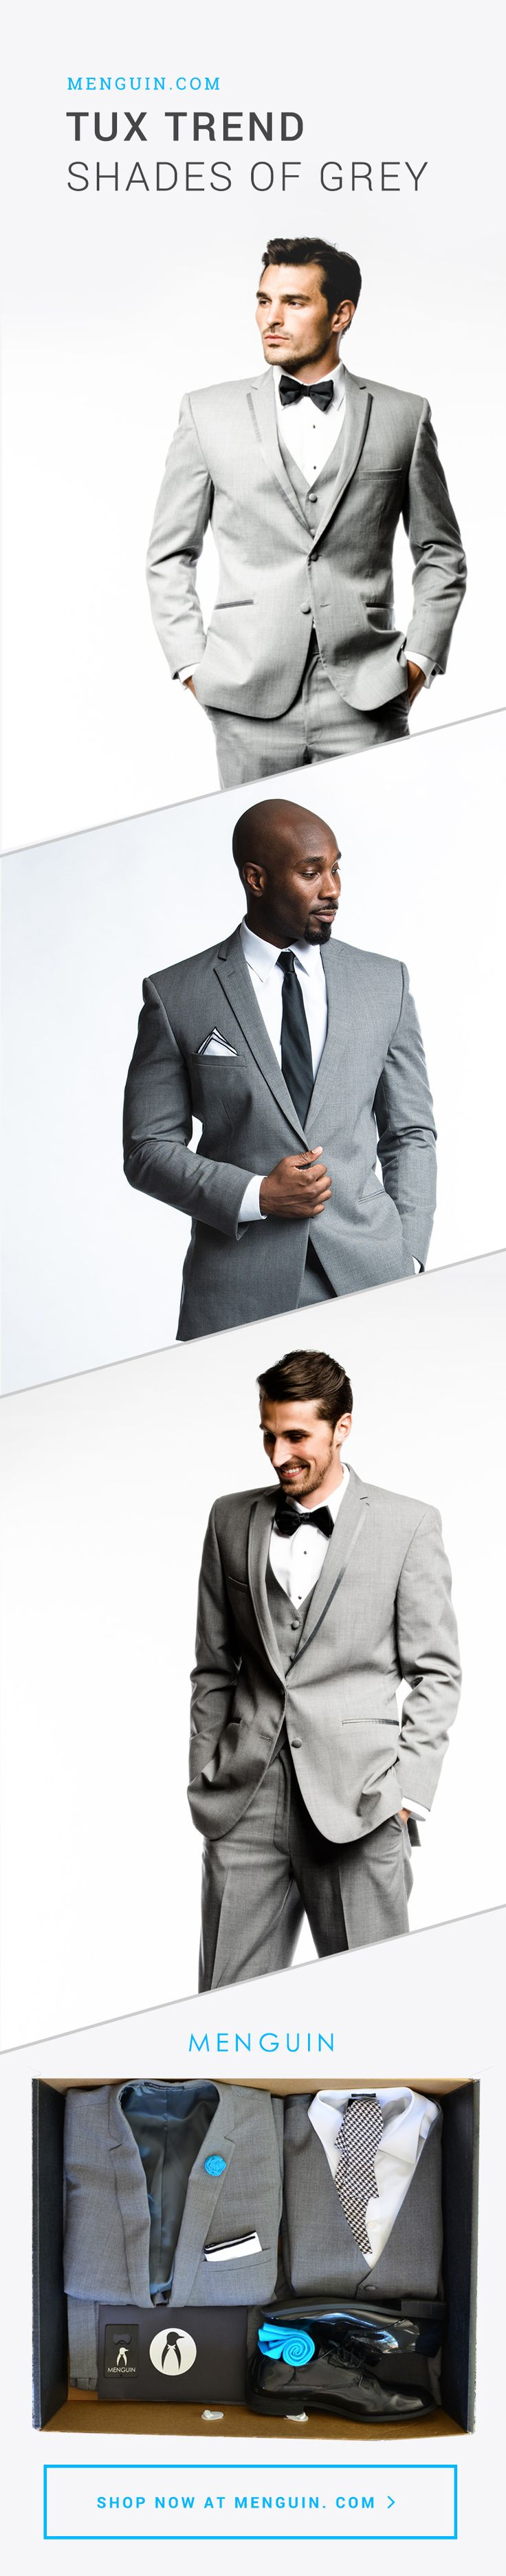 Following Love is Love Events on Pinterest?! Check Out Our Fb page https://m.facebook.com/LoveisLoveEvents to learn more about us & our services!! Tux Trend: Shades of Grey | Menguin.com